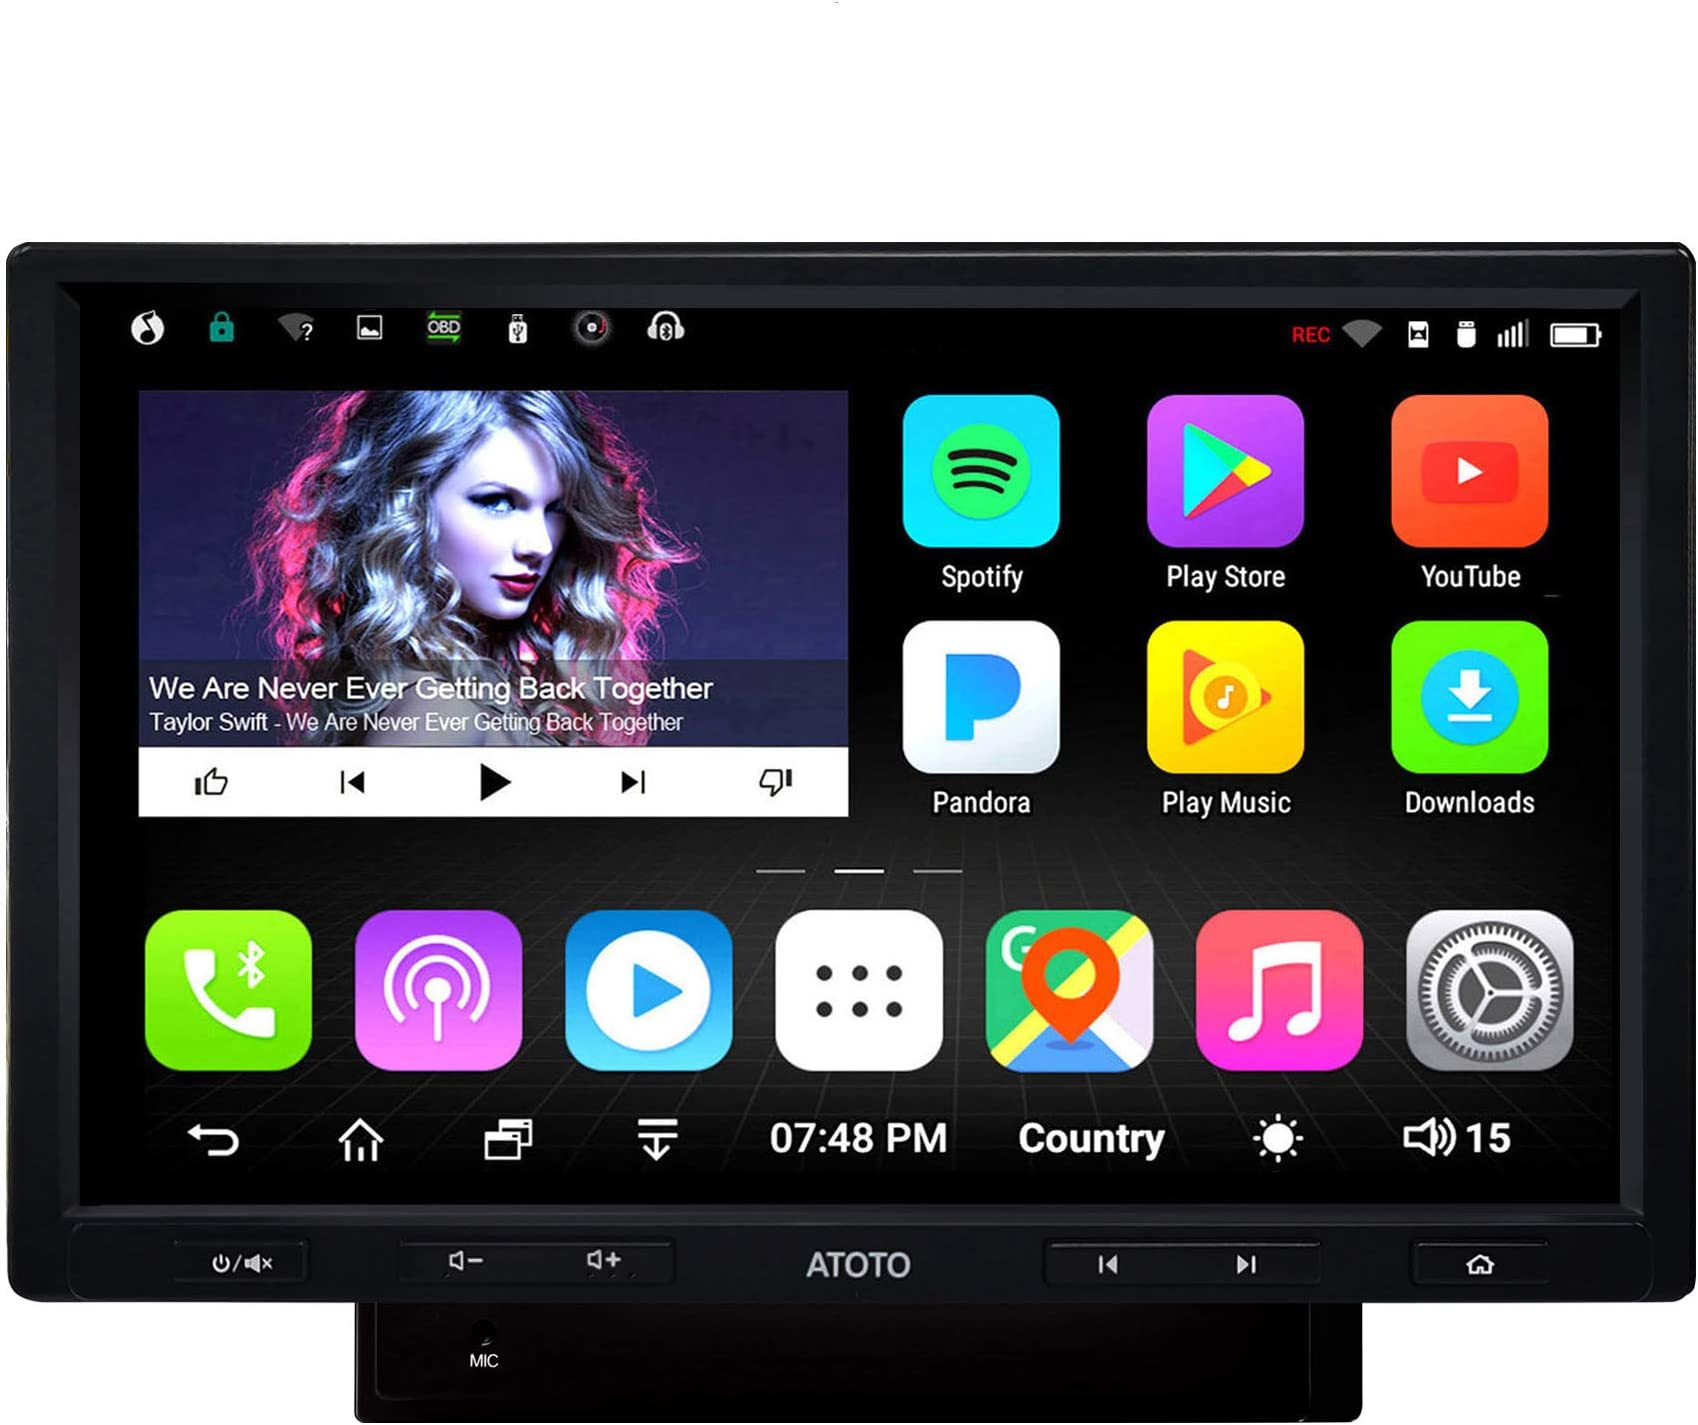 [10inch] ATOTO A6 2DIN Android Car Navigation Stereo with Dual Bluetooth - A6 Standard A6Y1010SB Car Entertainment Multimedia Radio,WiFi/BT Tethering Internet,Support 256G SD &More